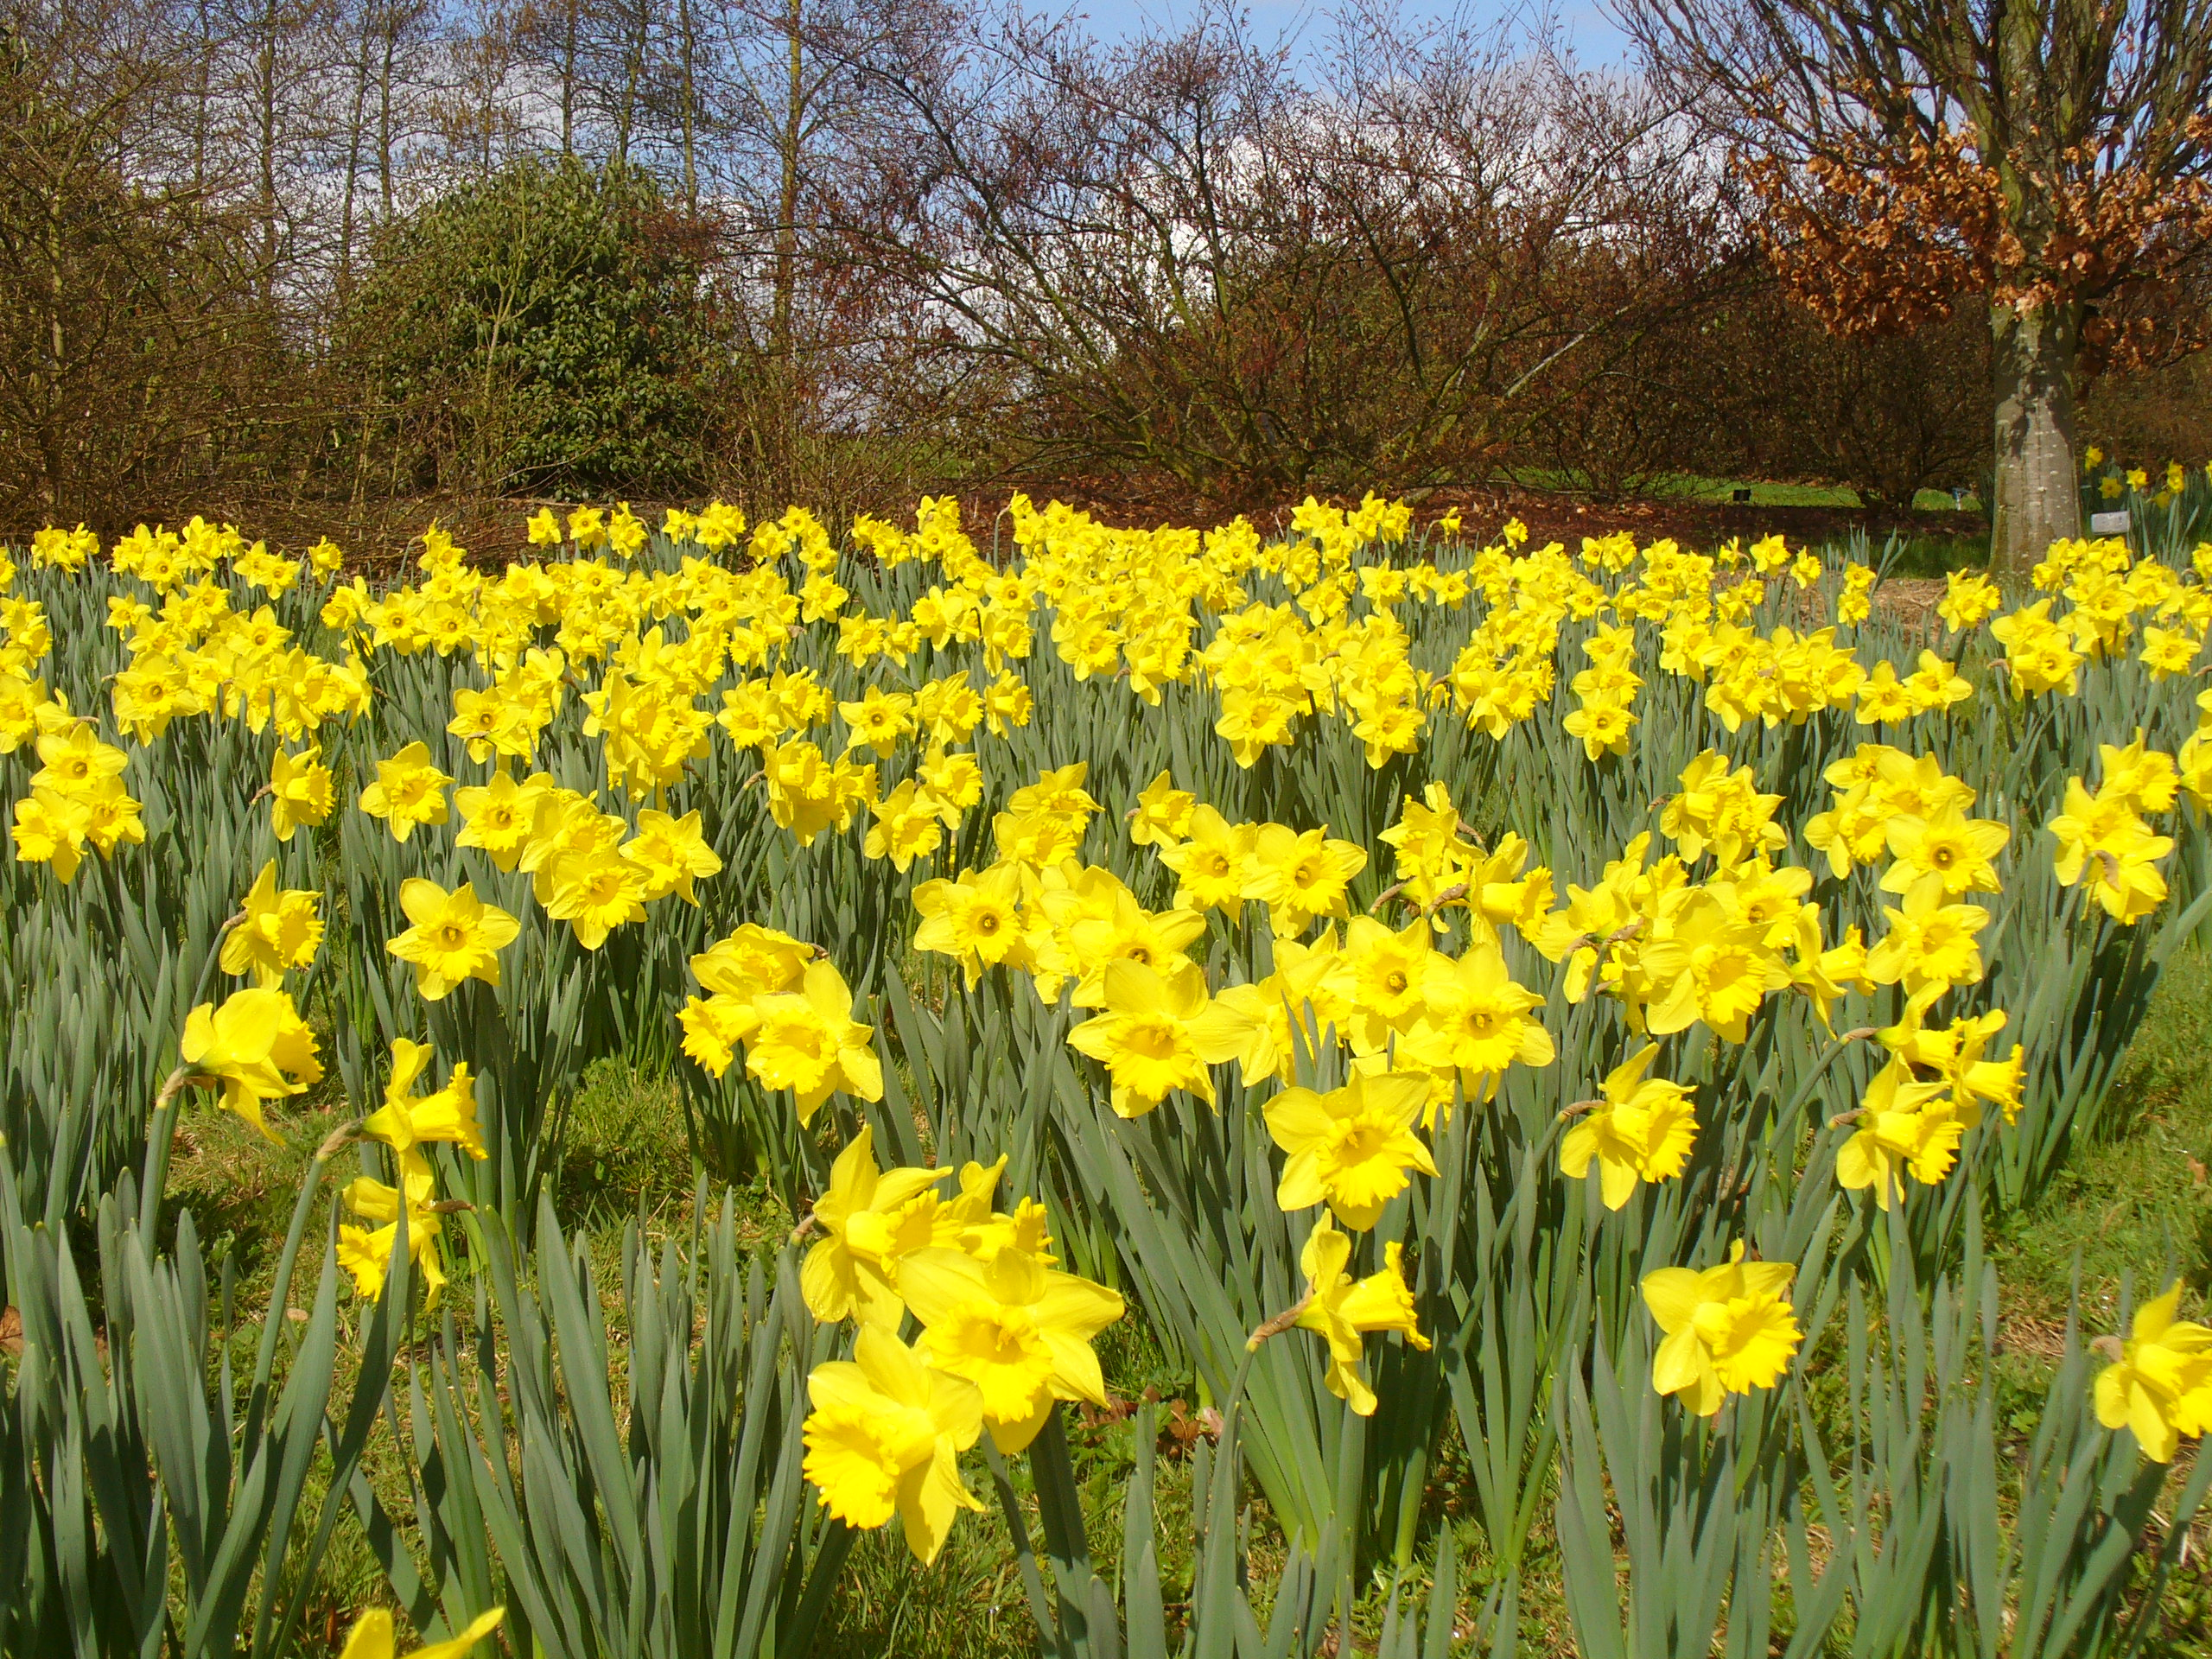 Google images daffodils image library download Google images daffodils - ClipartFest image library download